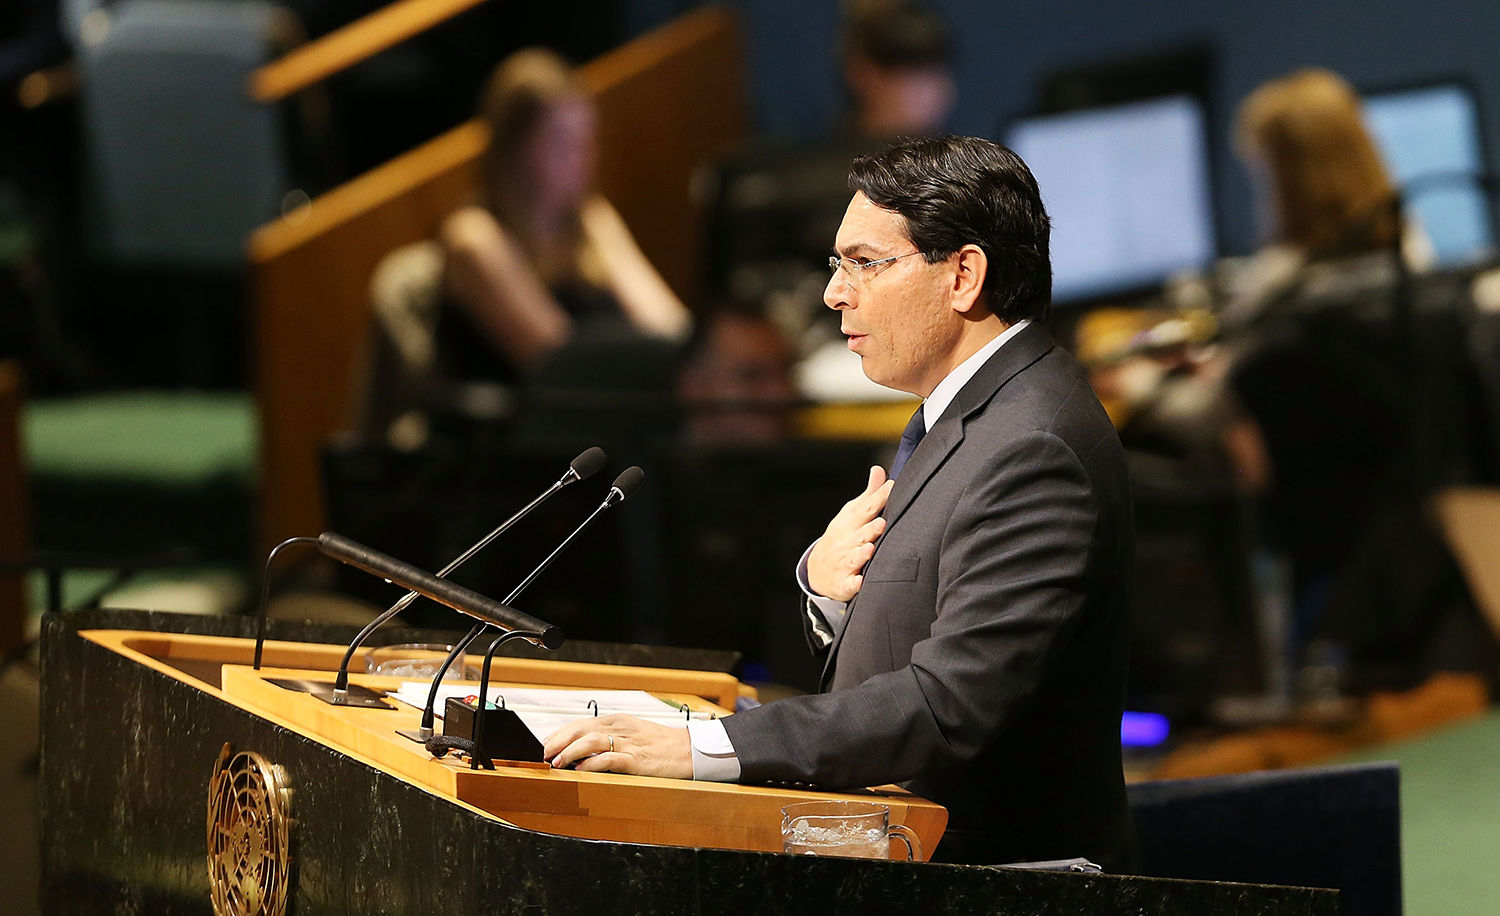 Danny Danon, Israel's representative to the United Nations, speaks on the floor of the General Assembly on December 21, 2017 in New York City. Spencer Platt/Getty Images.